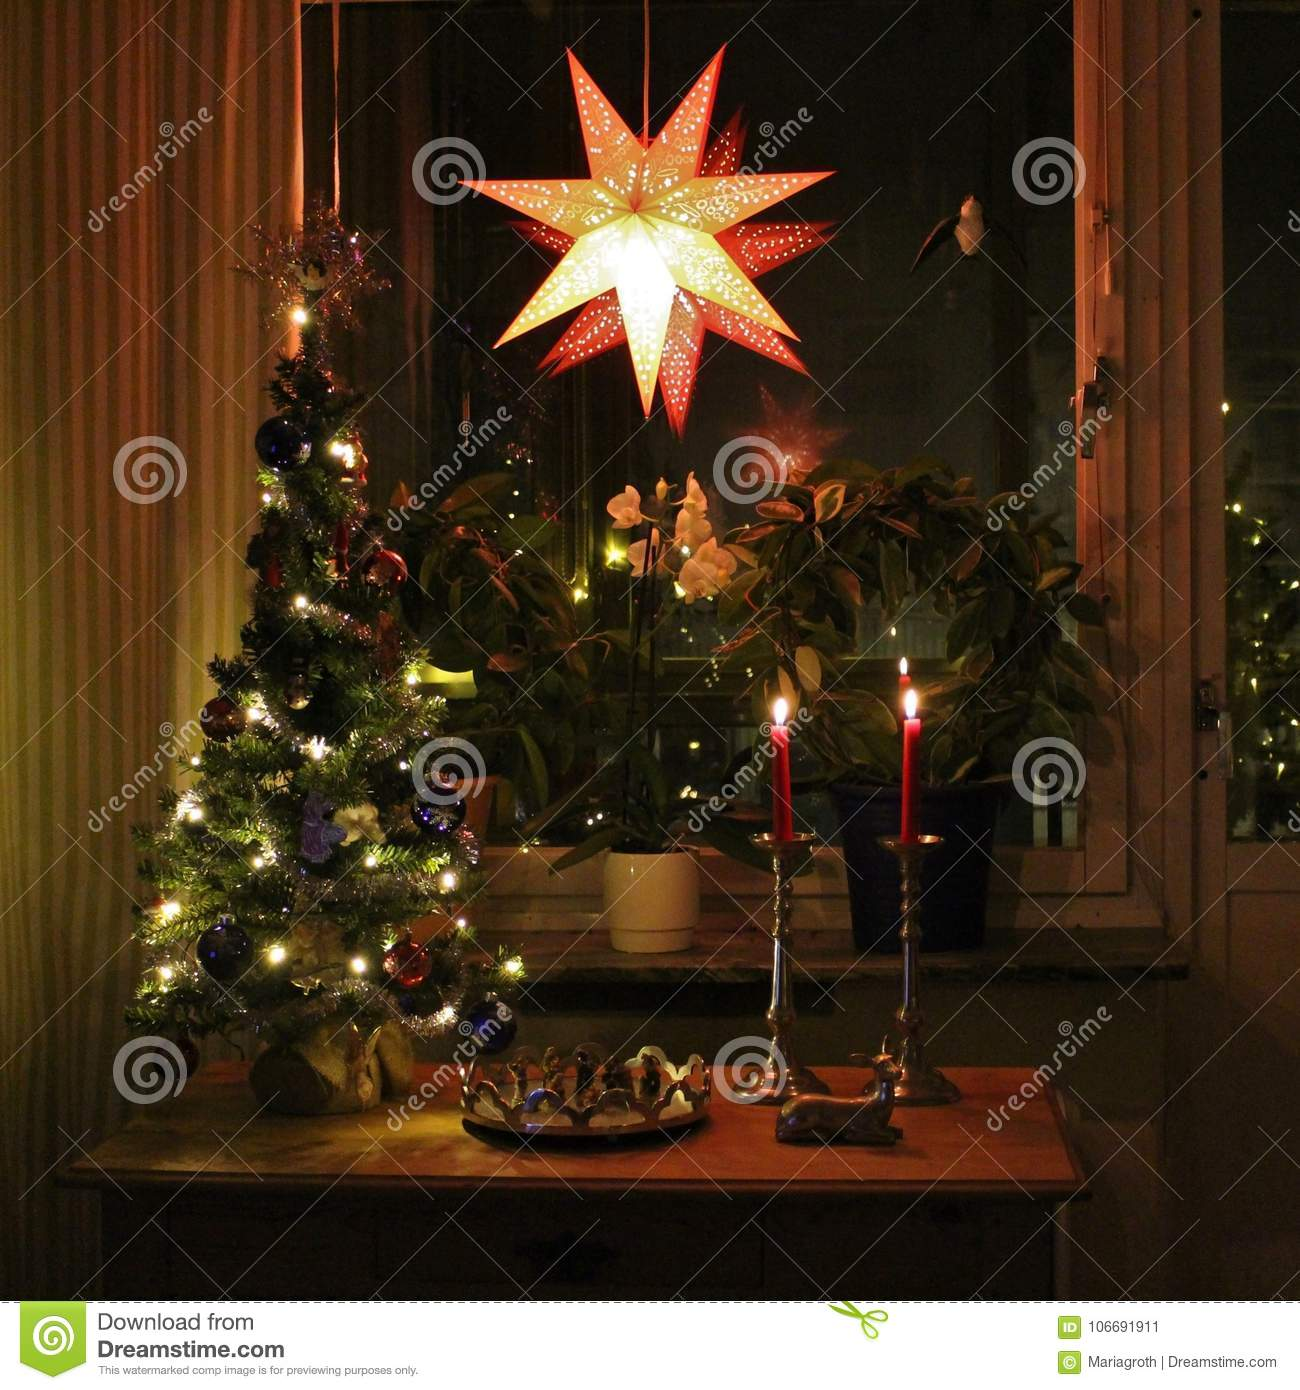 A Homely And Christmas Decorated Living Room Stock Image Image Of Holiday Peace 106691911